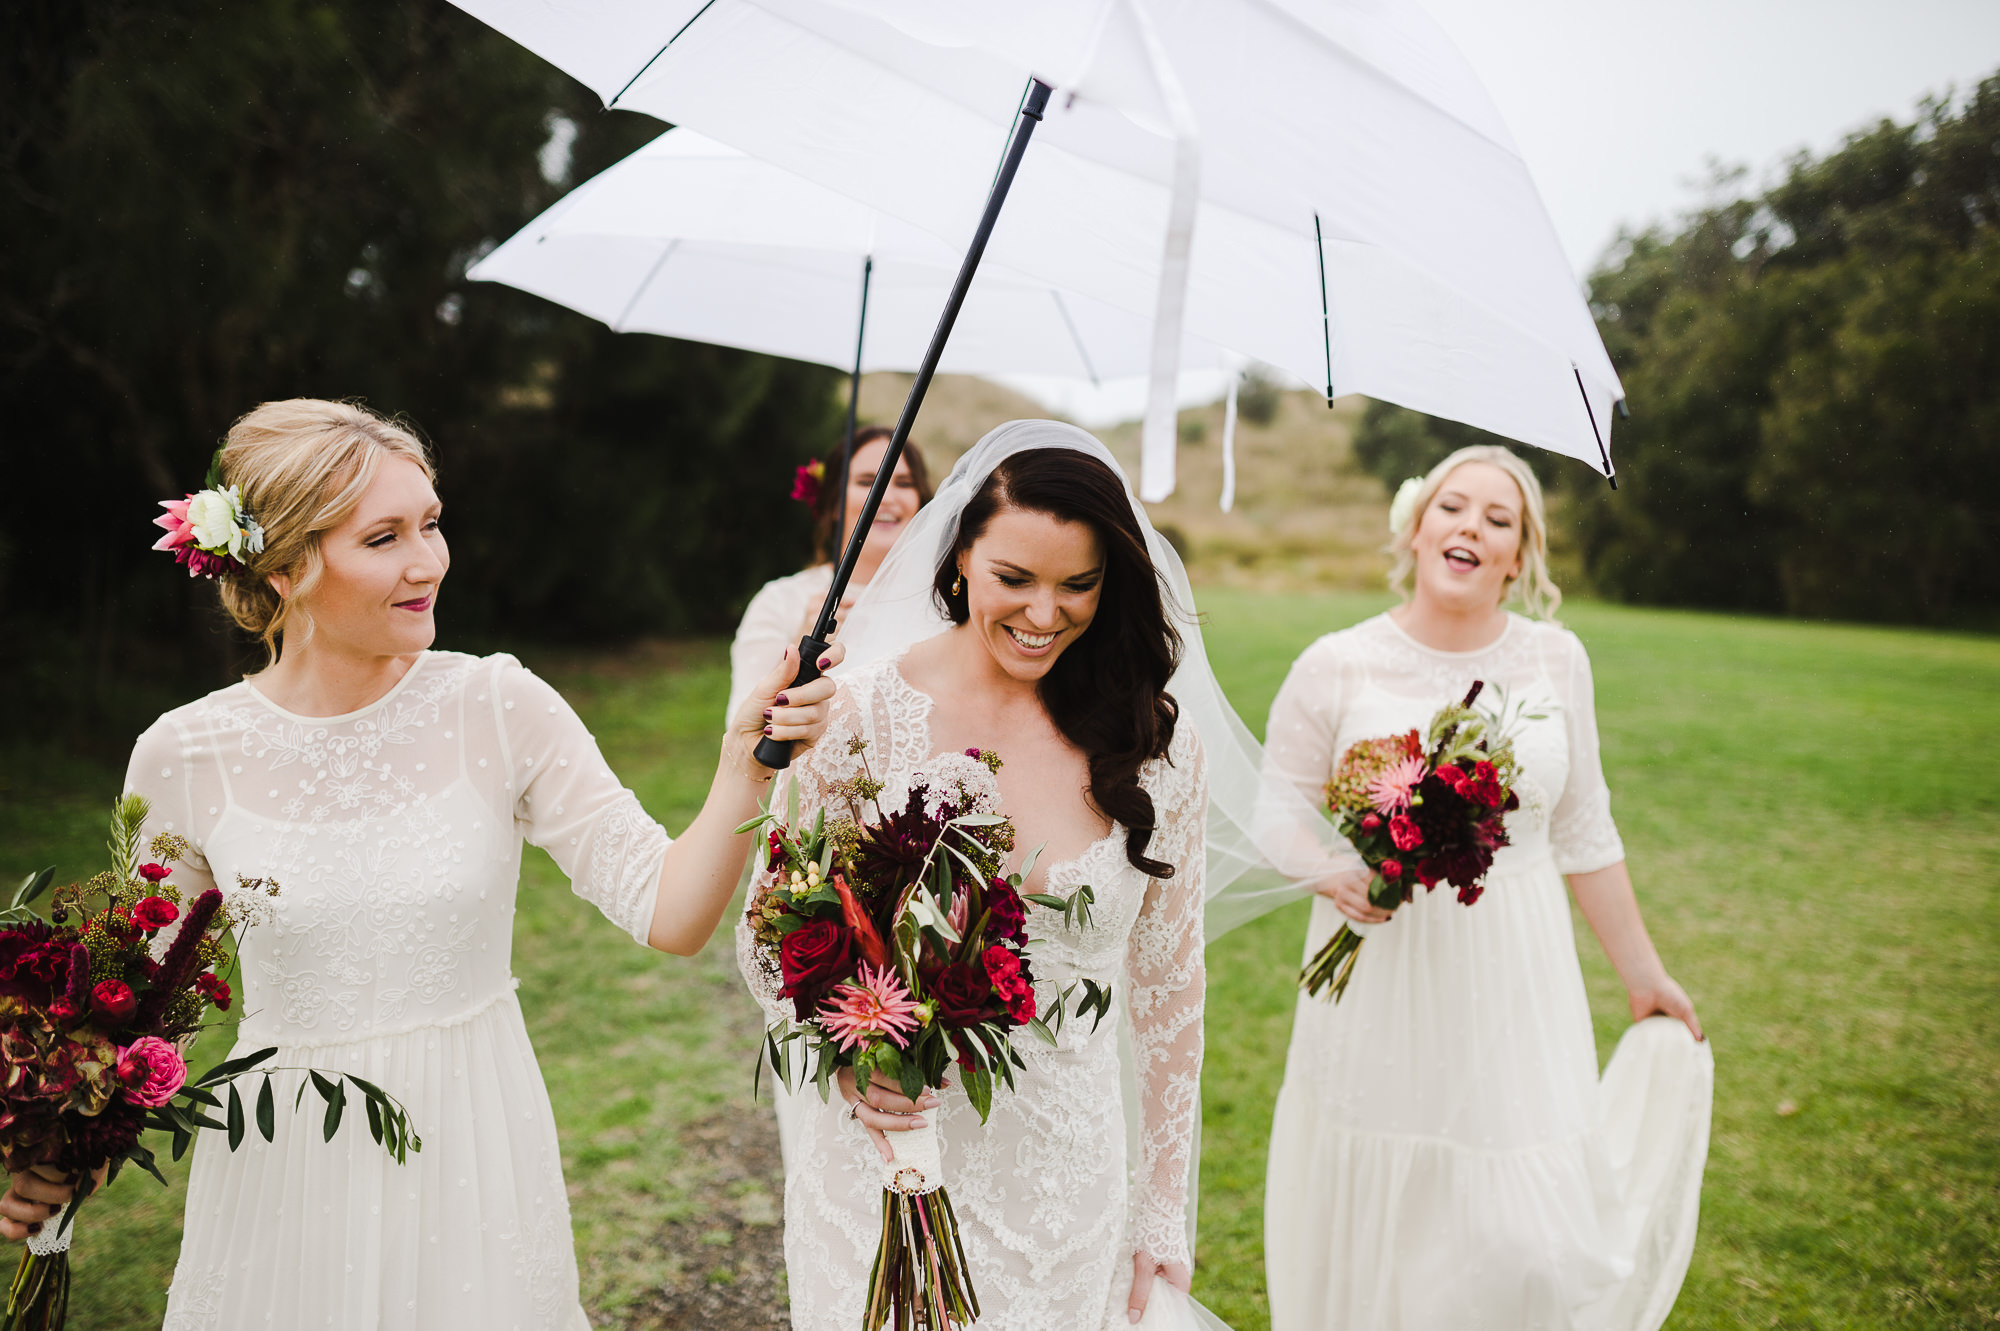 bridesmaids having fun in rain.jpg